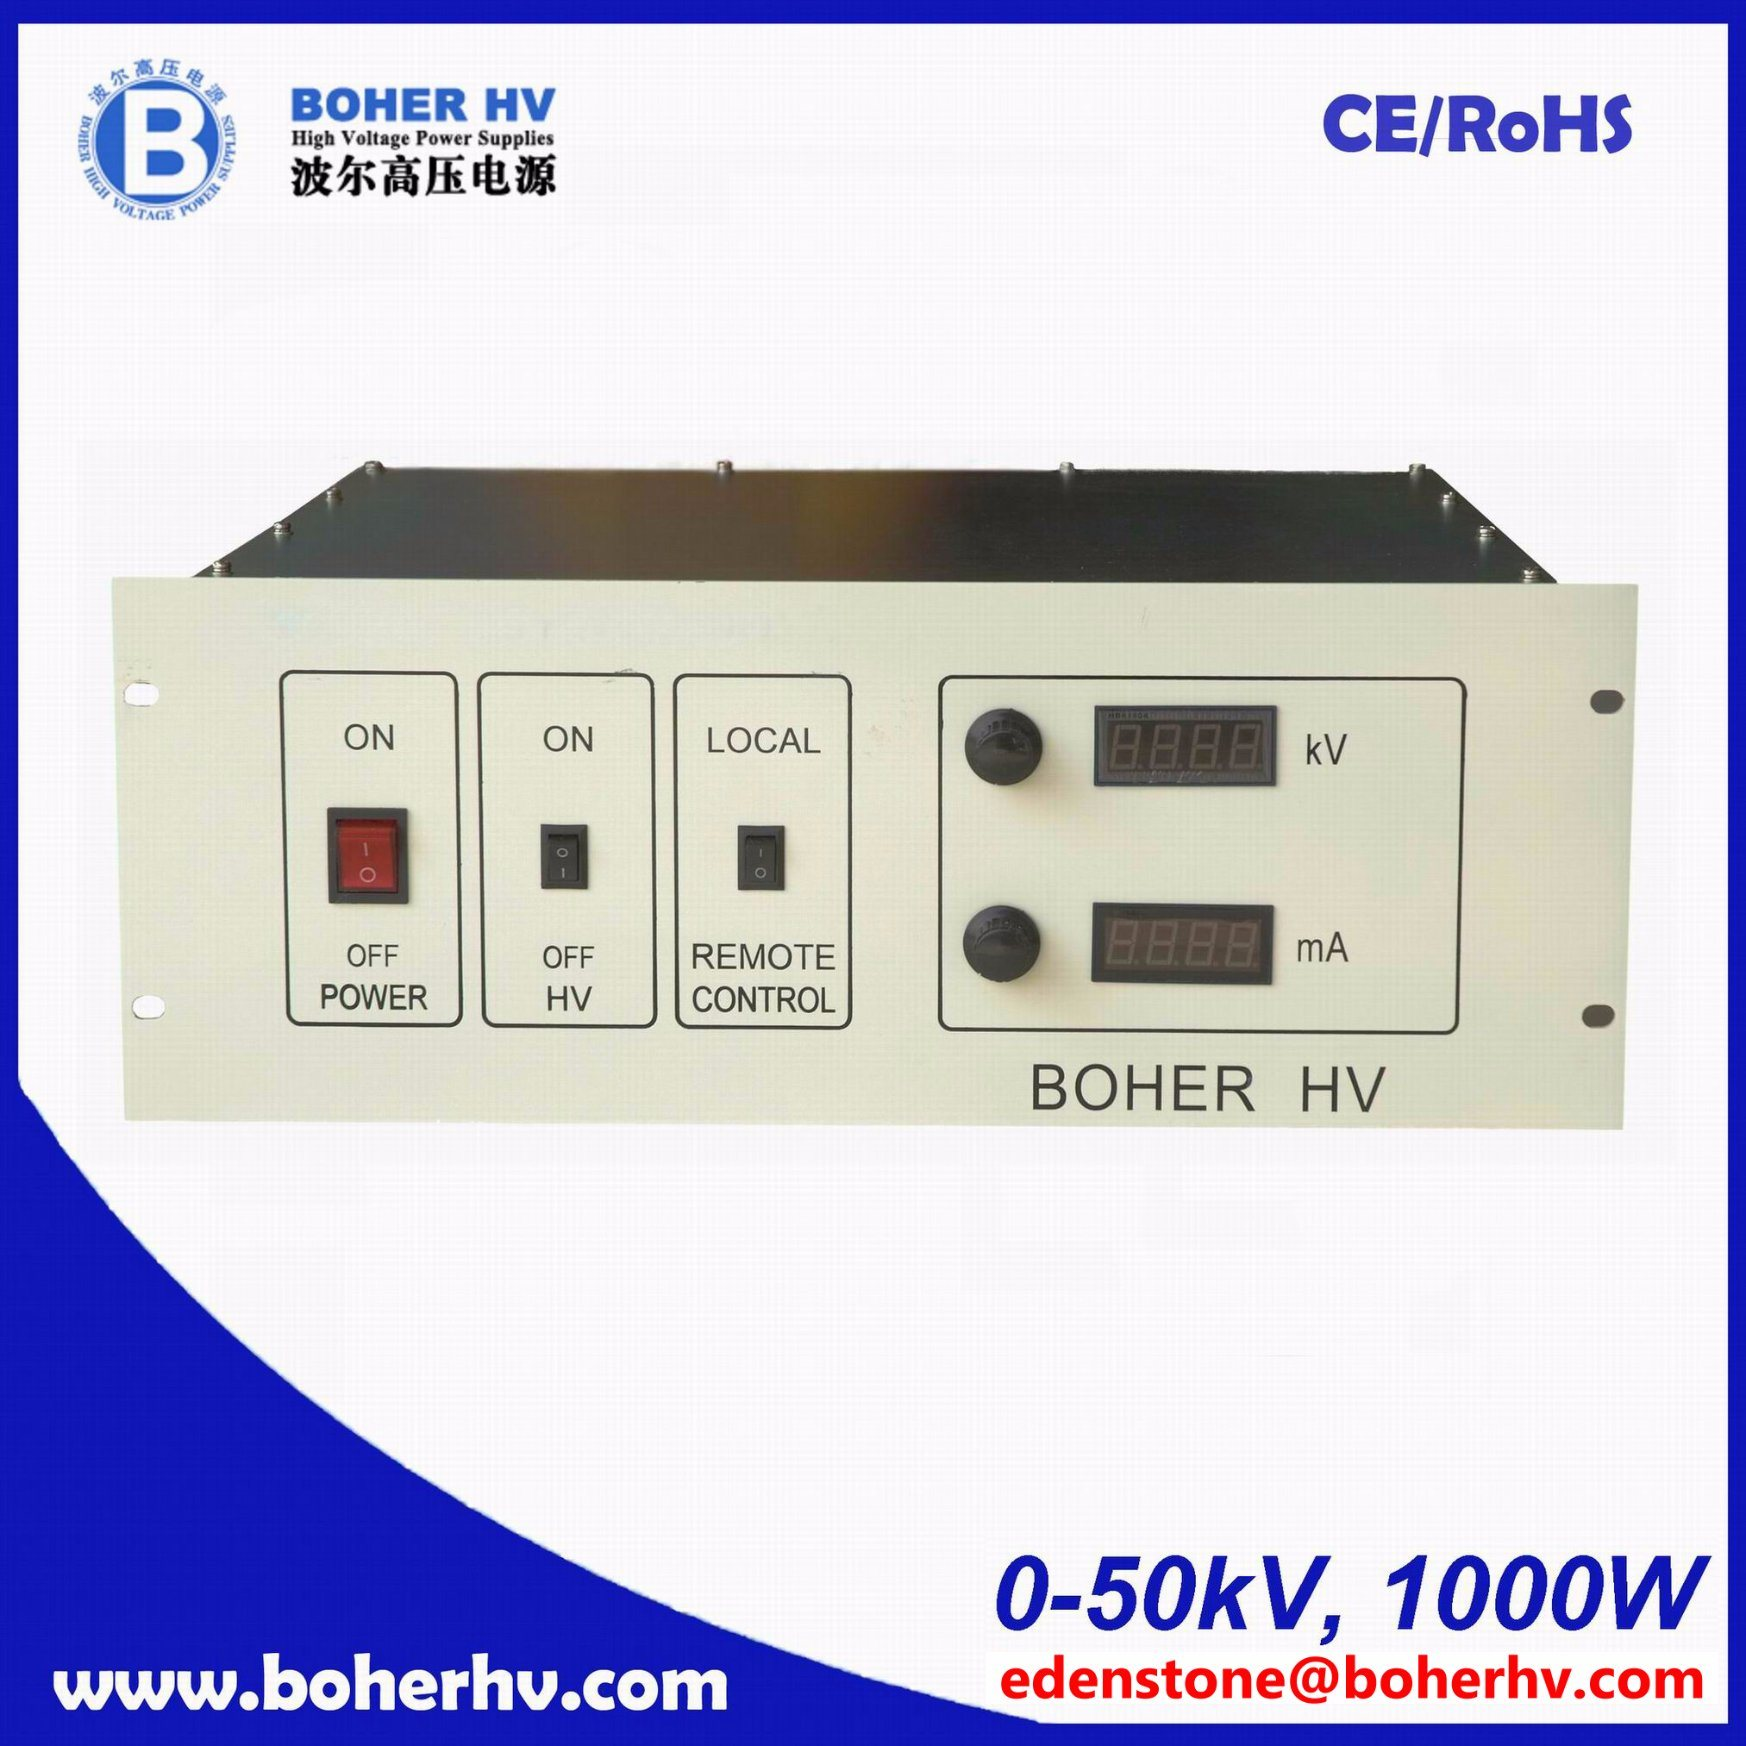 High Voltage power supply 4U 1000W 50kV LAS-230VAC-P1000-50K-4U